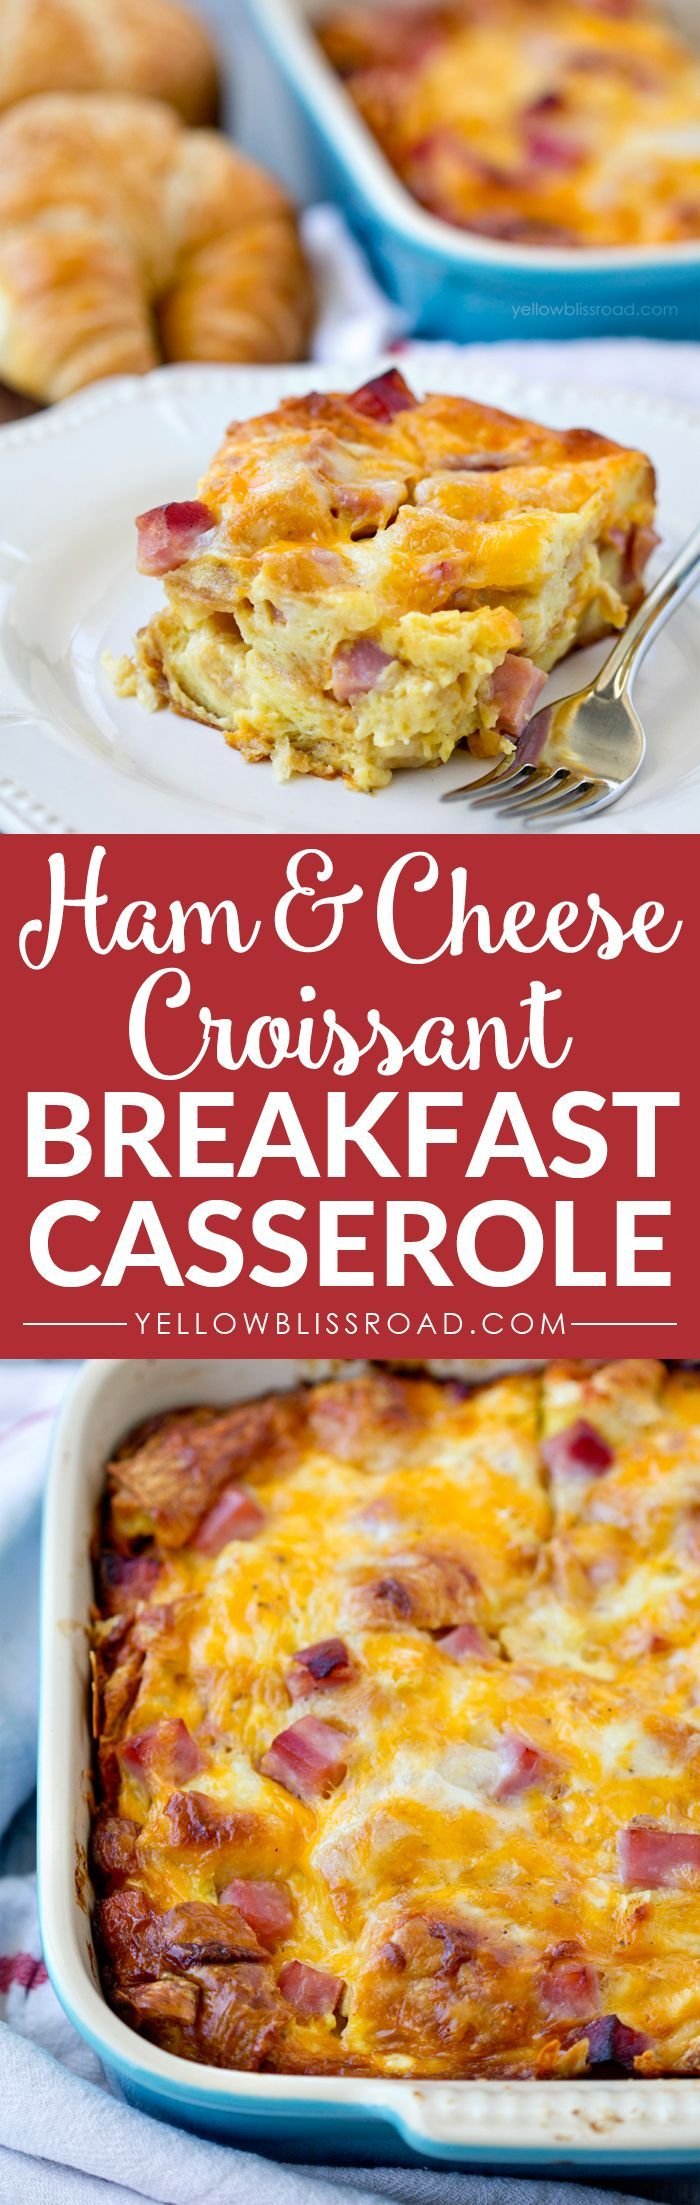 Ham and Cheese Croissant Breakfast Casserole! Great breakfast recipe!